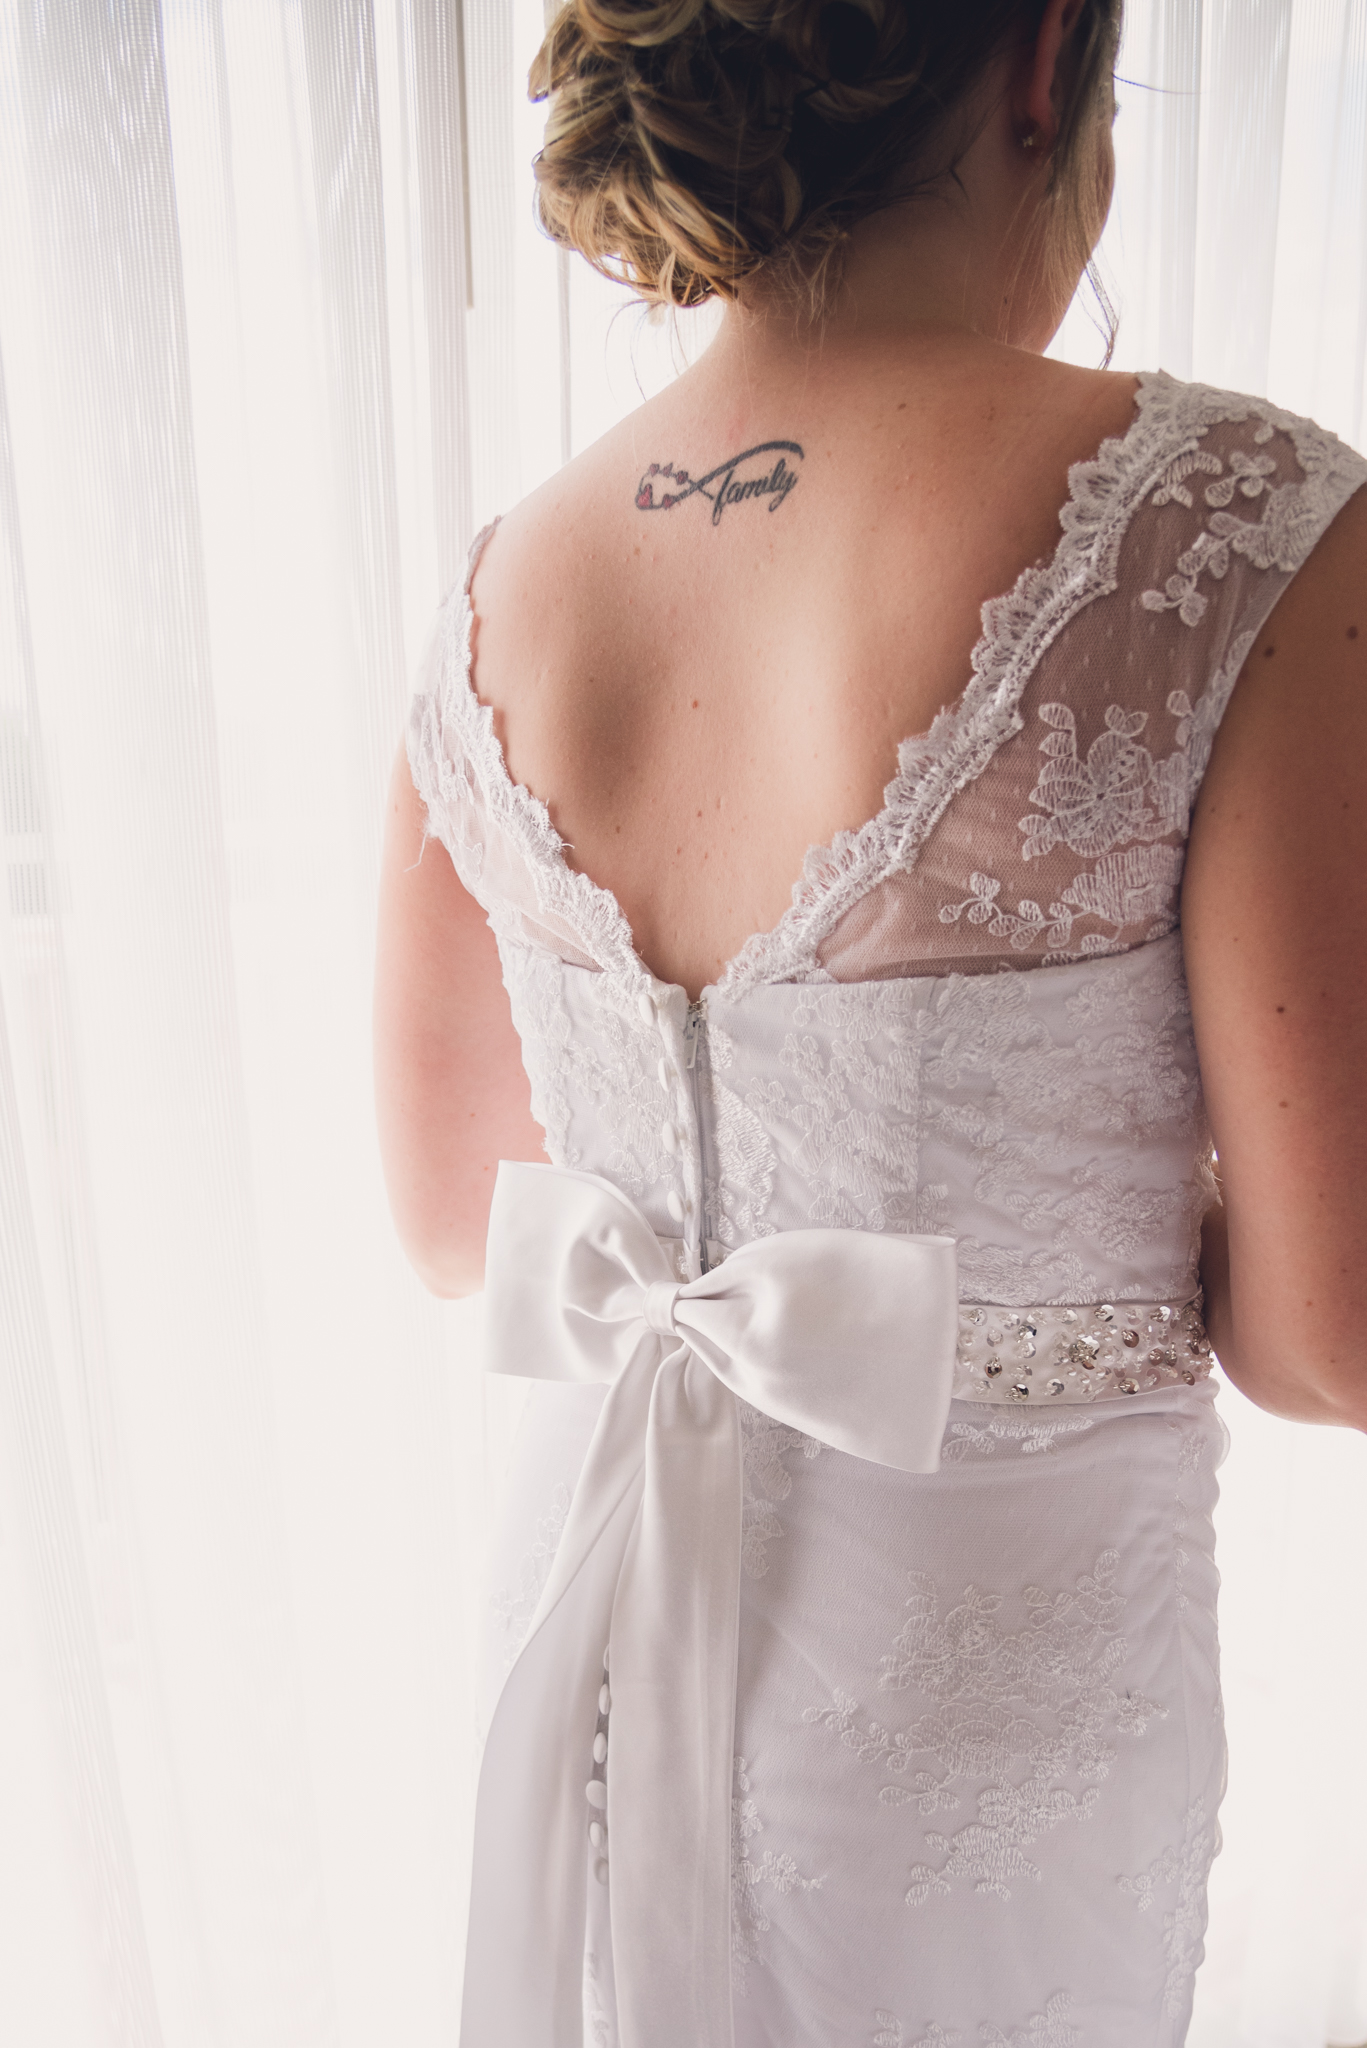 Raleigh Wedding, DoubleTree Hotel, Megan and Adam, wedding dress